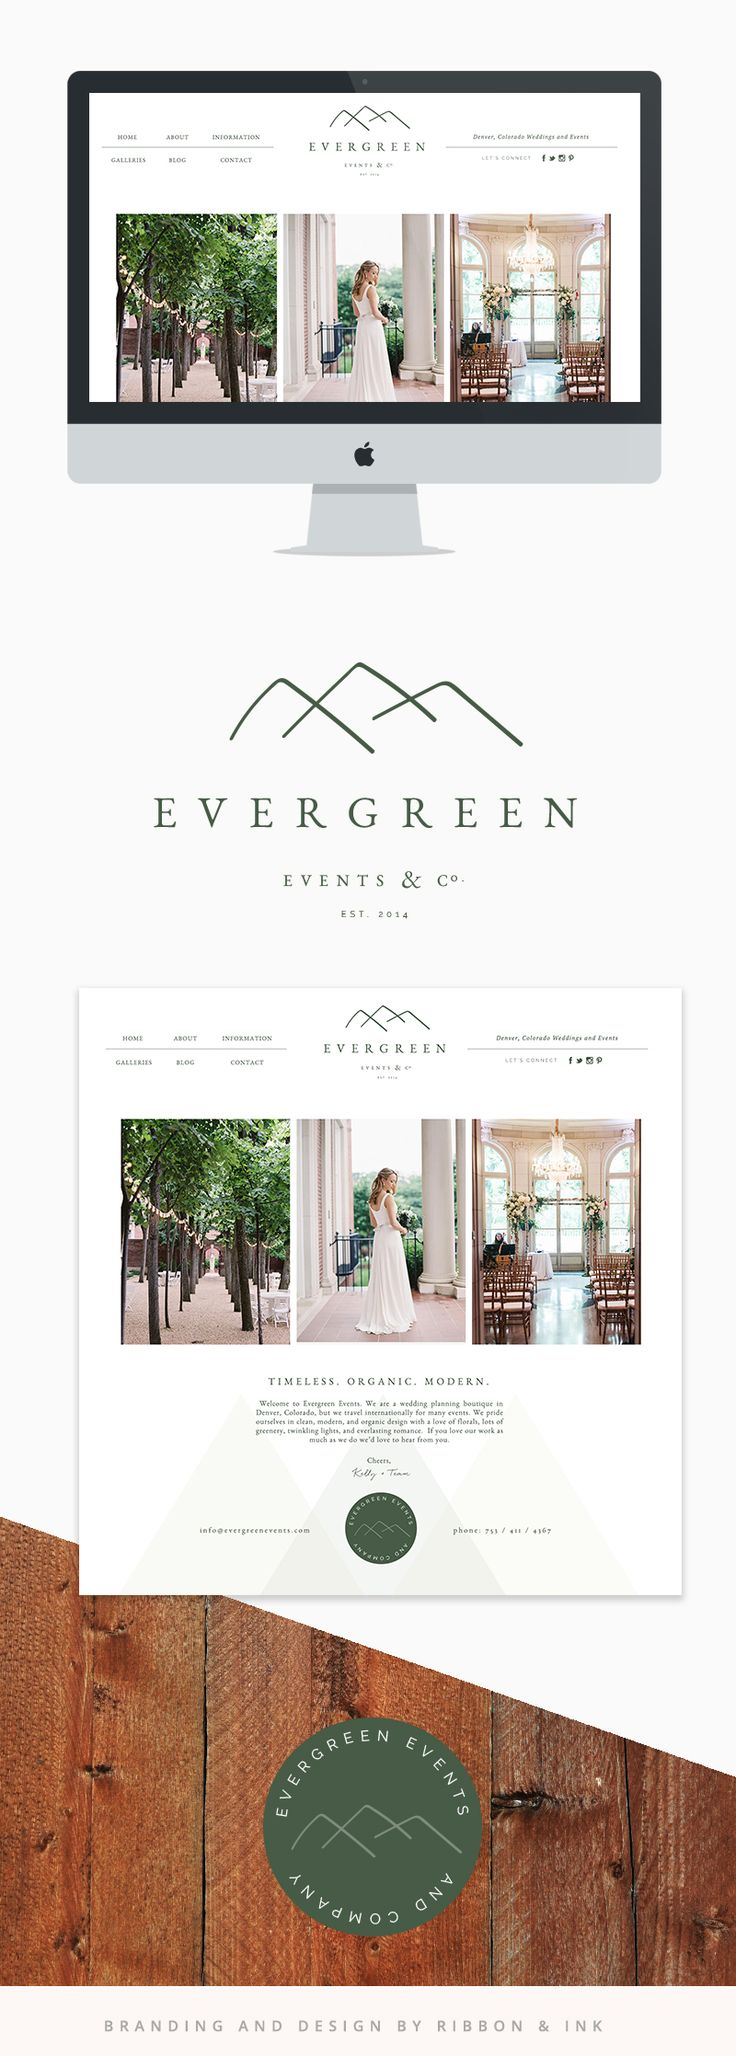 Branding / Web design / website / photographer website / custom website / website ideas/ website inspiration / Brand board / brand design / custom logo / photographer brand / photographer logo / color palette / logo design / organic / wood / green / mountains / wedding planner